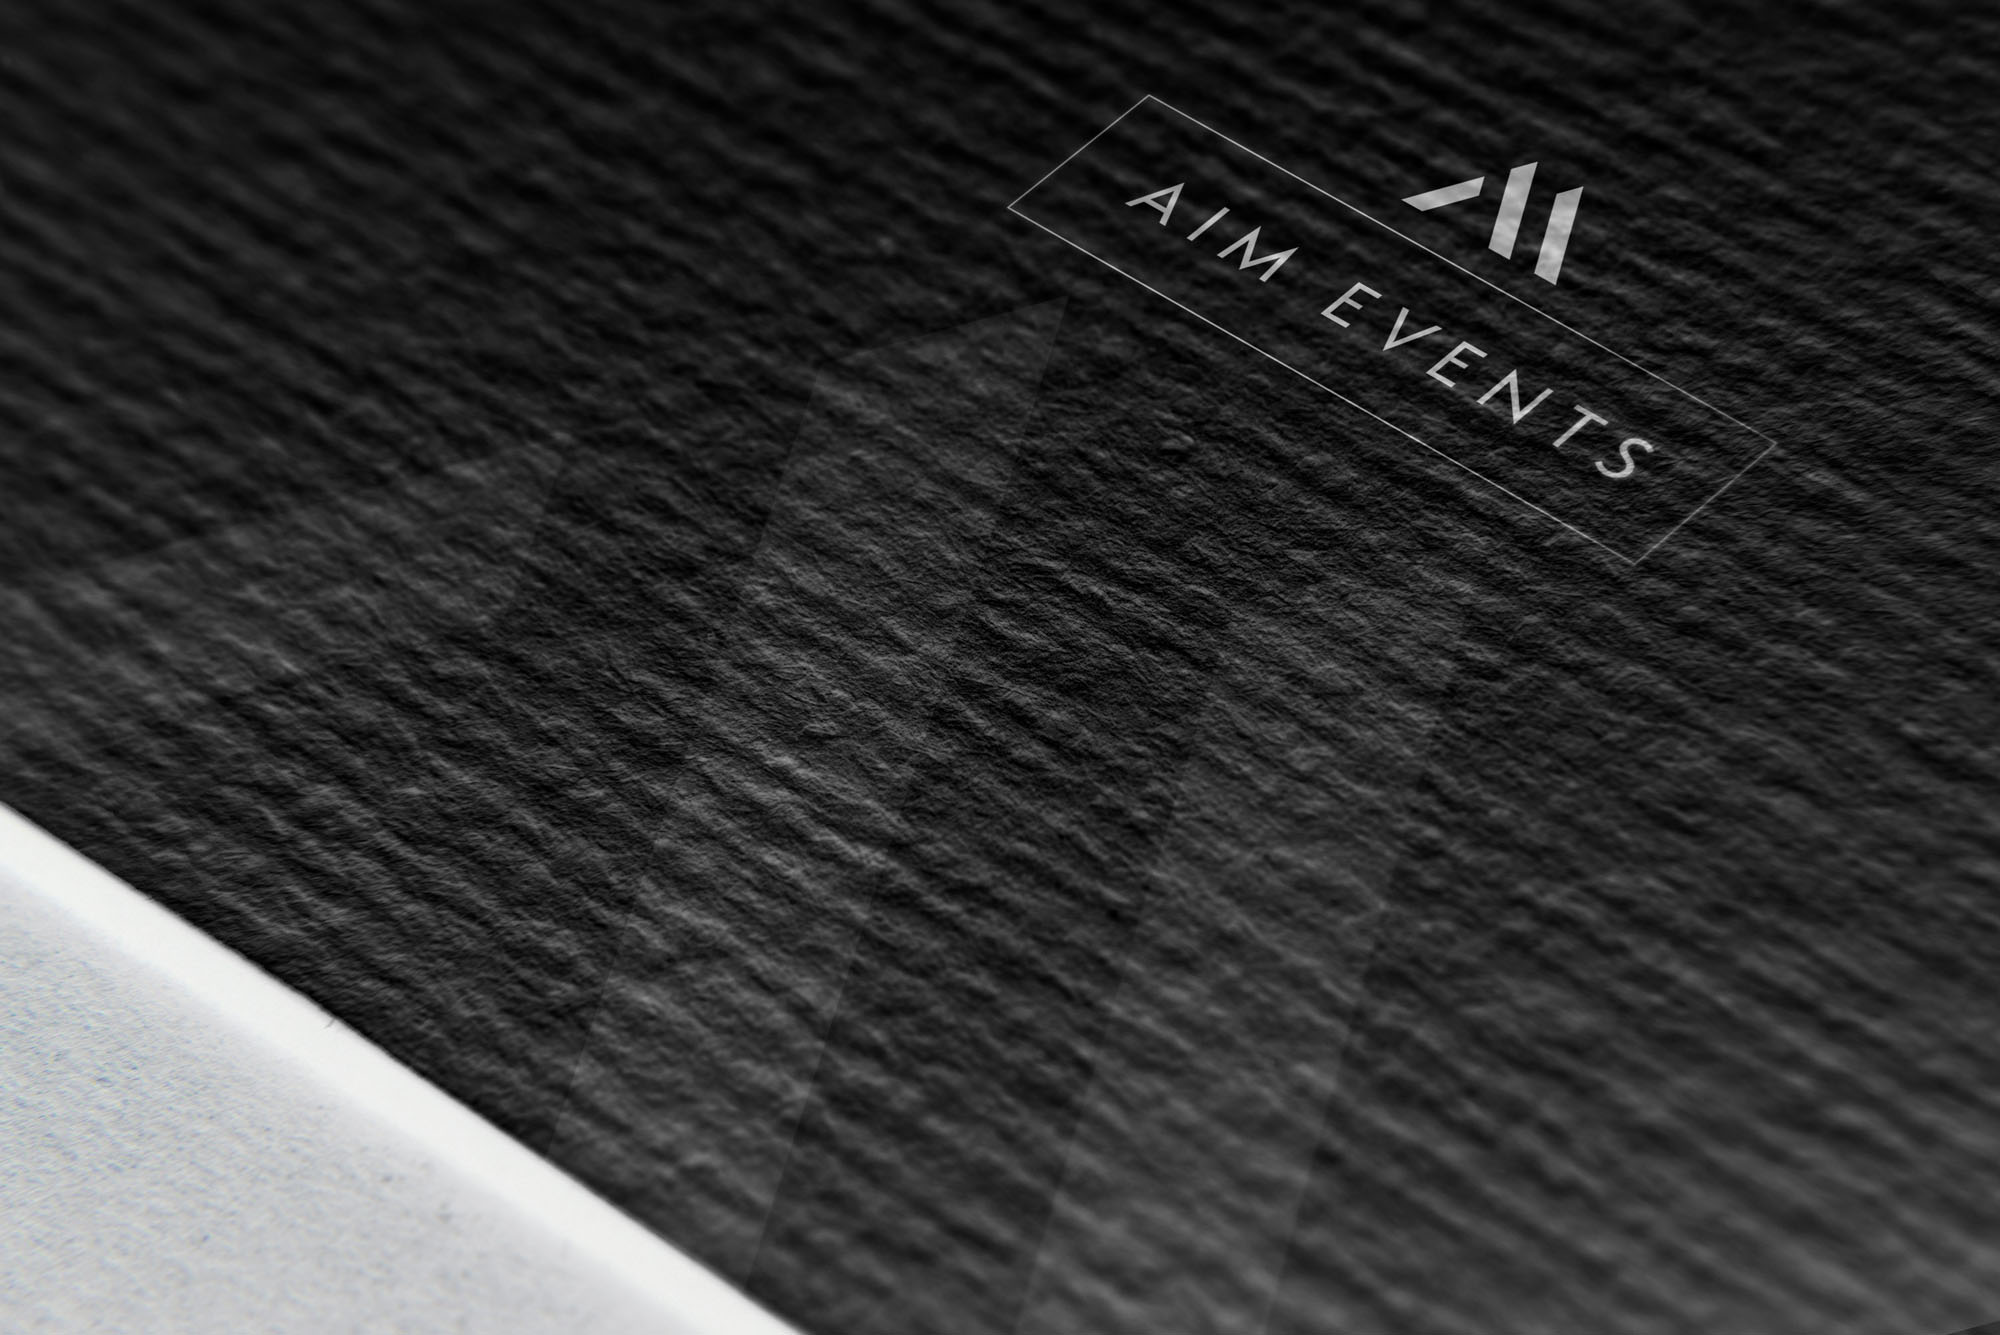 AIM Events London Branding and Identity Design Project